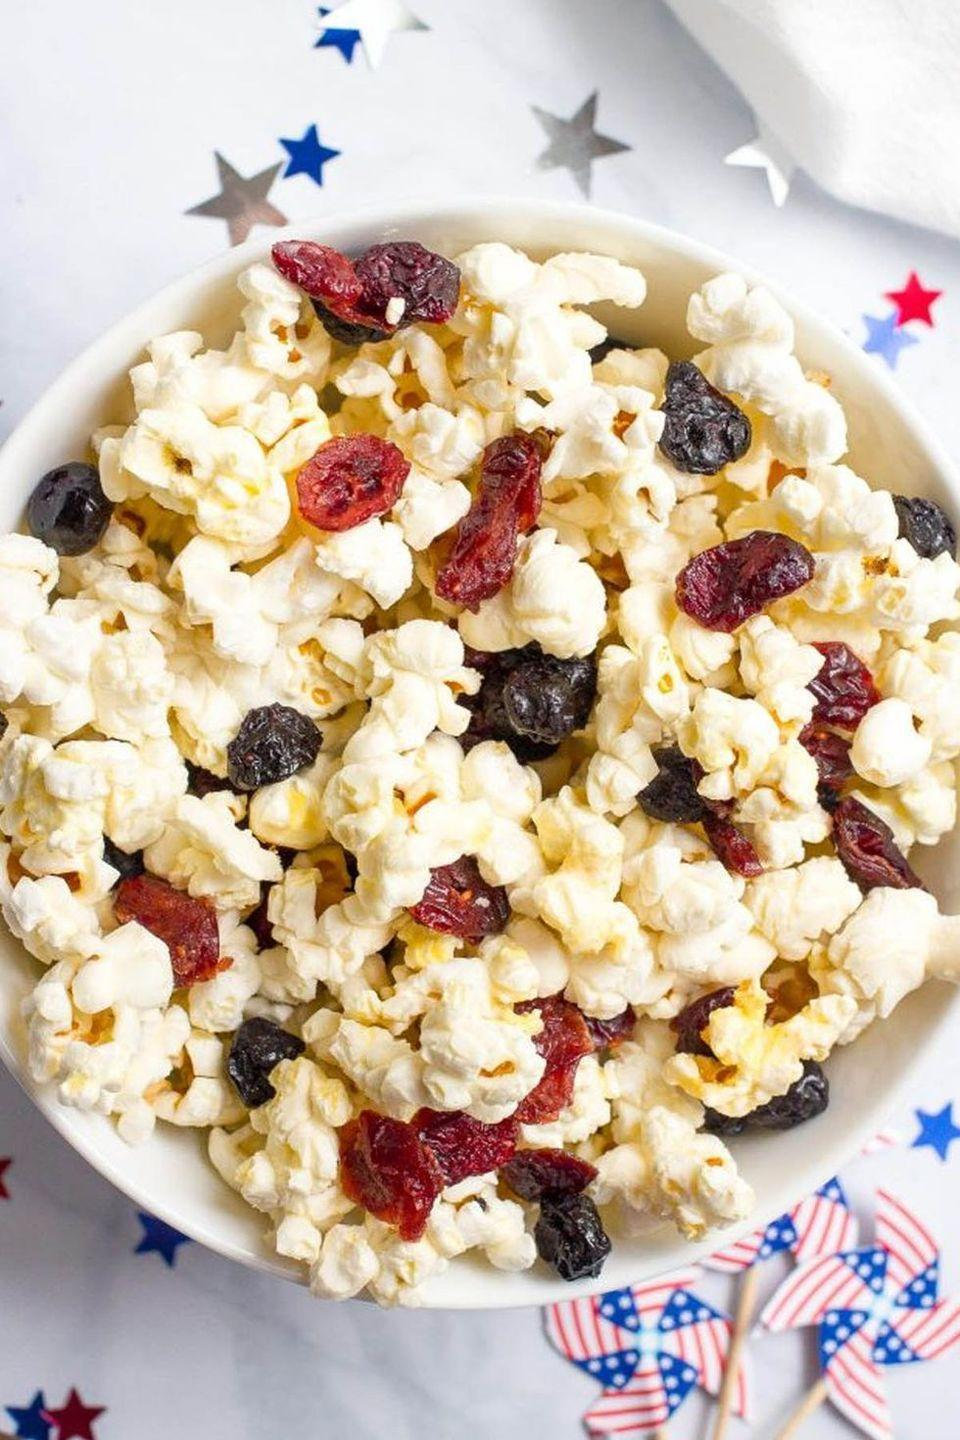 """<p>Fruity popcorn is just the thing to enjoy before a big grilled feast. It's not <em>too</em> filling, but still hits the spot.</p><p><strong>Get the recipe at <a href=""""http://www.familyfoodonthetable.com/3-easy-red-white-blue-july-4th-appetizers/"""" rel=""""nofollow noopener"""" target=""""_blank"""" data-ylk=""""slk:Family Food on the Table"""" class=""""link rapid-noclick-resp"""">Family Food on the Table</a>.</strong></p><p><strong><strong><a class=""""link rapid-noclick-resp"""" href=""""https://go.redirectingat.com?id=74968X1596630&url=https%3A%2F%2Fwww.walmart.com%2Fip%2FThe-Pioneer-Woman-Vintage-Floral-3-Piece-Serving-Bowl-Set%2F115837521&sref=https%3A%2F%2Fwww.thepioneerwoman.com%2Ffood-cooking%2Fmeals-menus%2Fg32157273%2Ffourth-of-july-appetizers%2F"""" rel=""""nofollow noopener"""" target=""""_blank"""" data-ylk=""""slk:SHOP SERVING BOWLS"""">SHOP SERVING BOWLS</a></strong><br></strong></p>"""